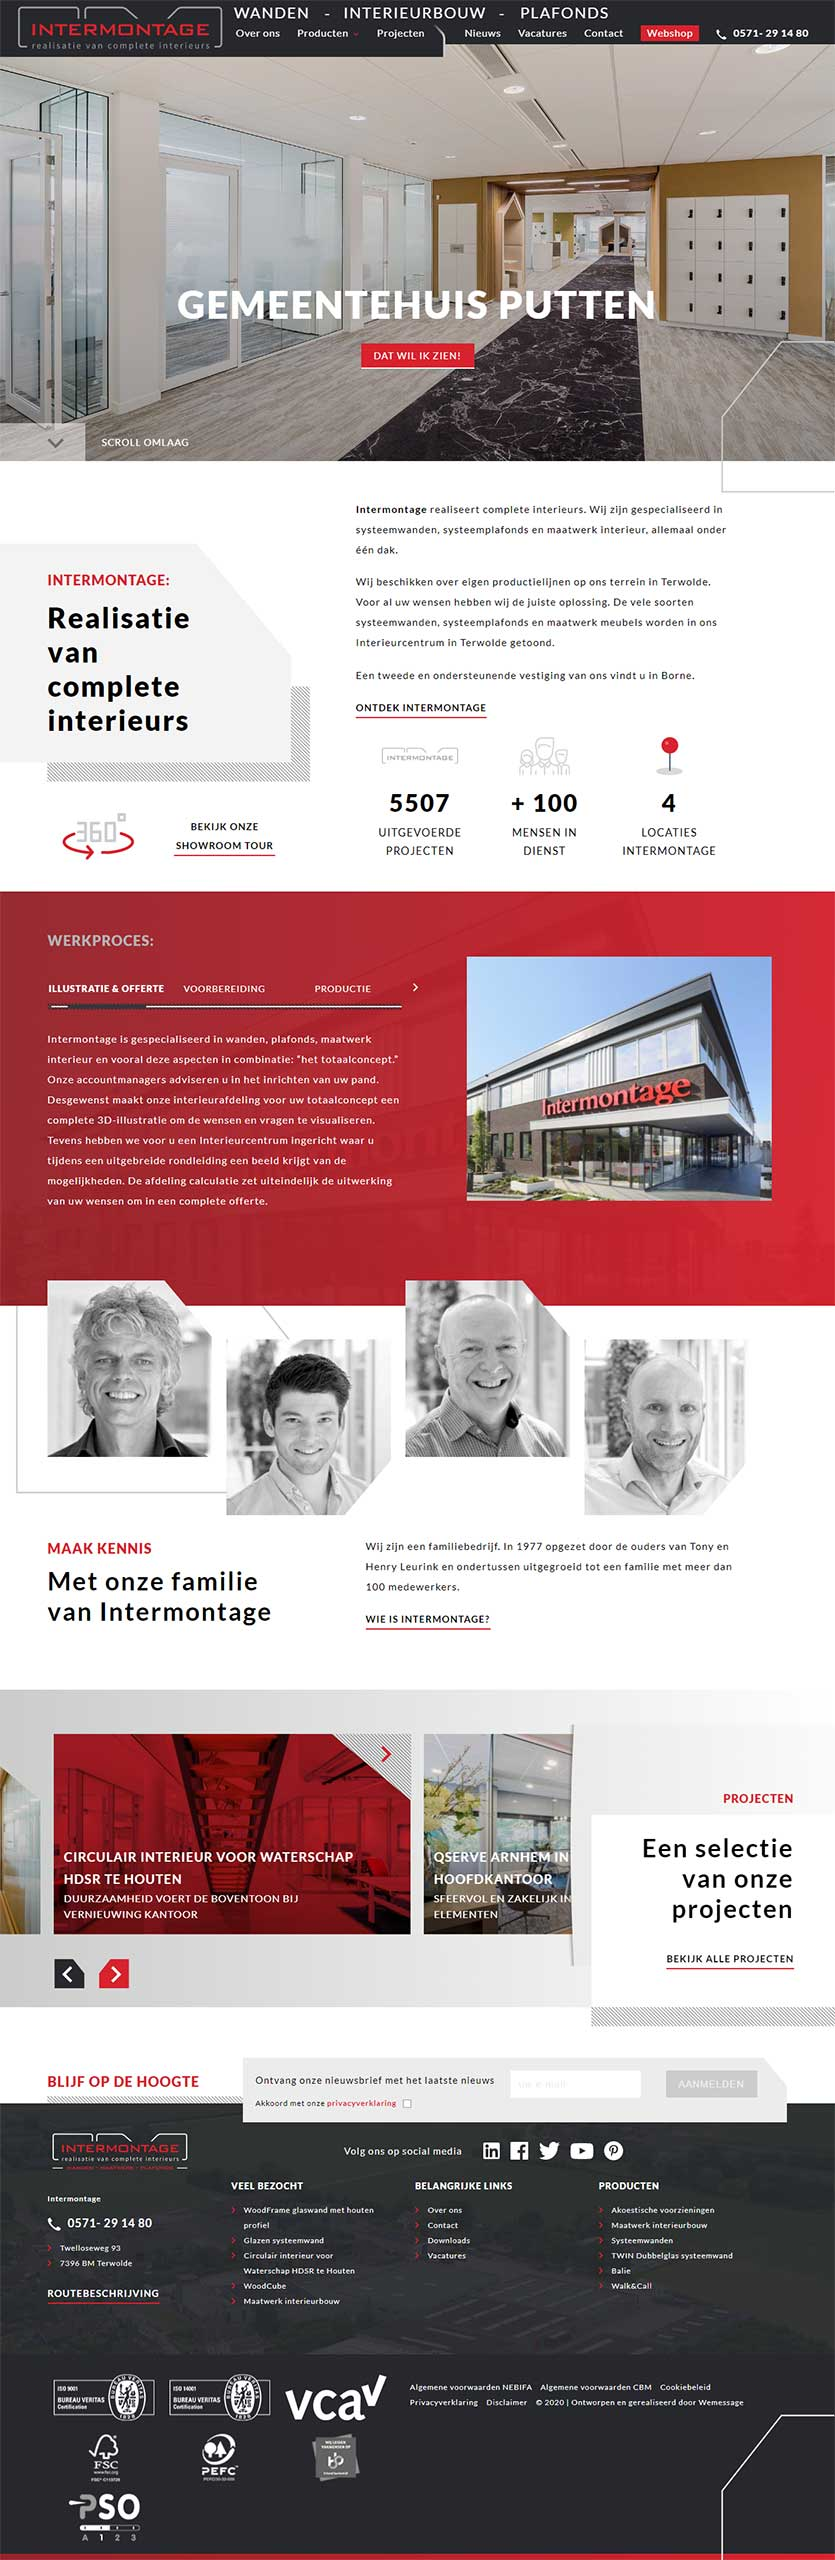 Intermontage website voorbeeld op laptops